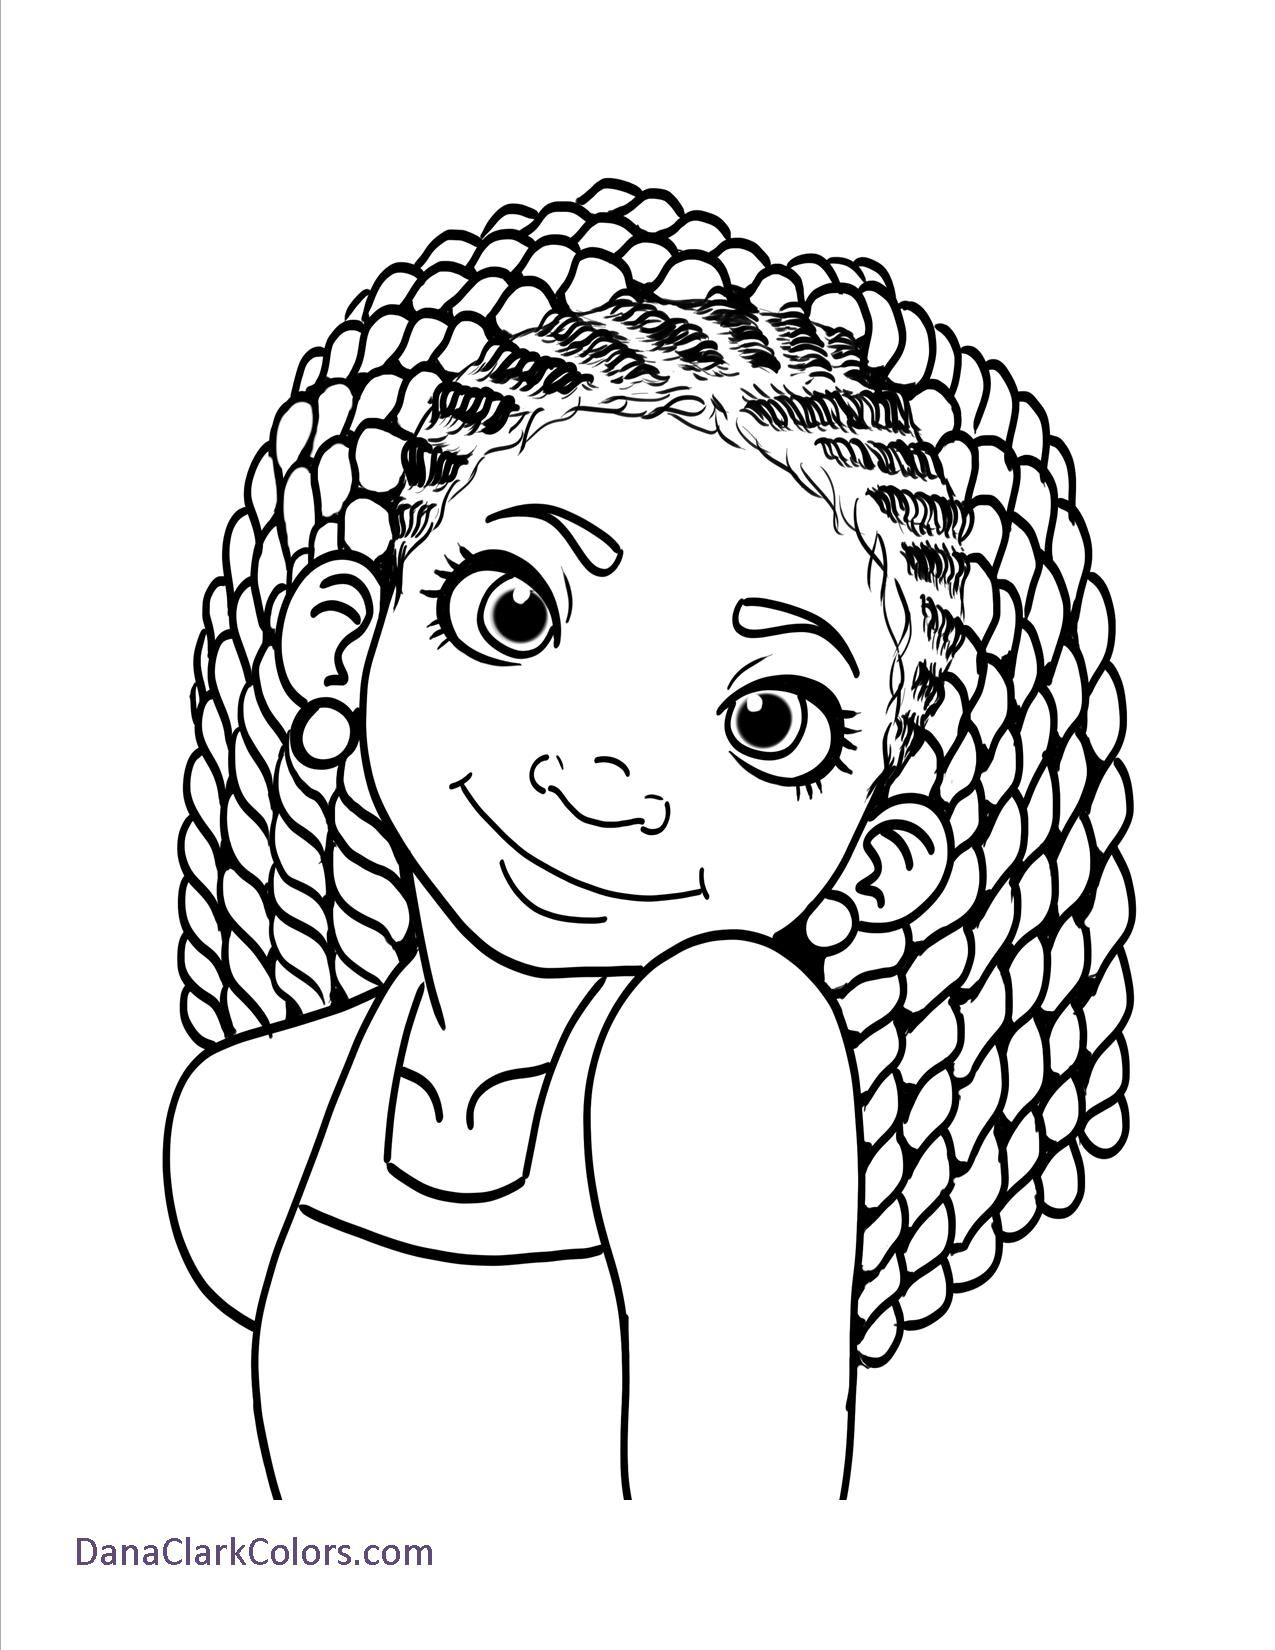 Free Coloring Pages | Coloring pages for girls, Coloring books, Drawings of black  girls